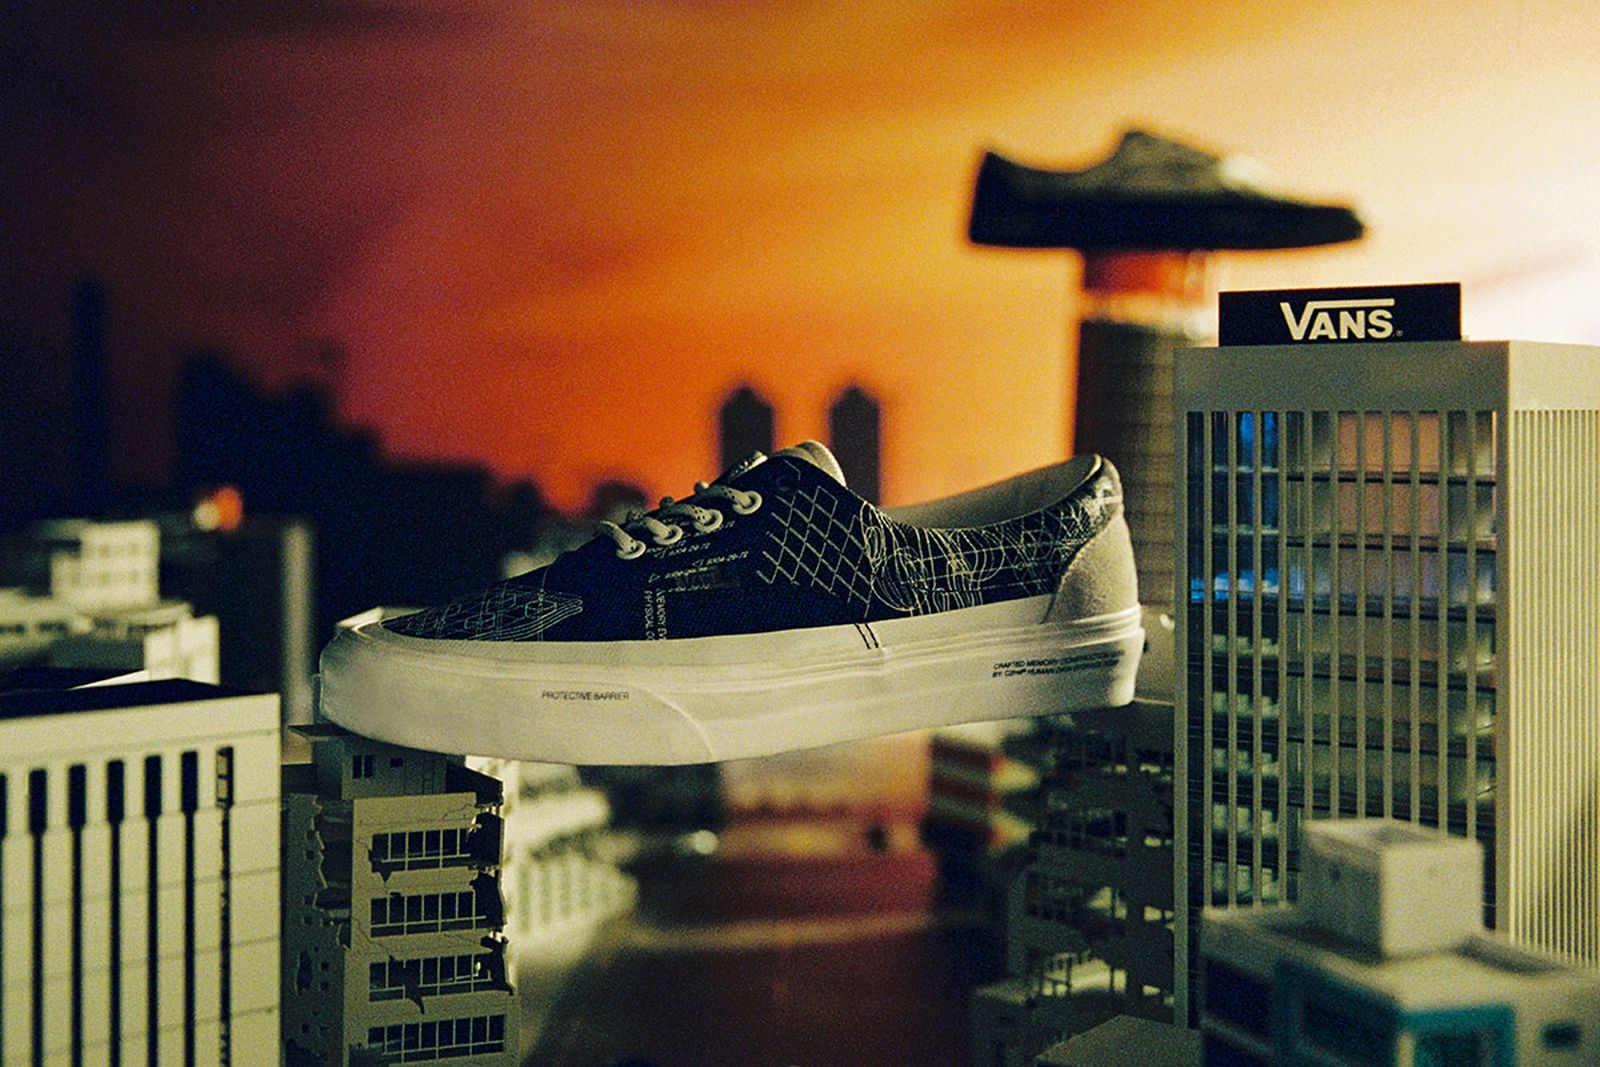 c2h4-vans-the-imagination-of-future-2-release-date-price-a-08